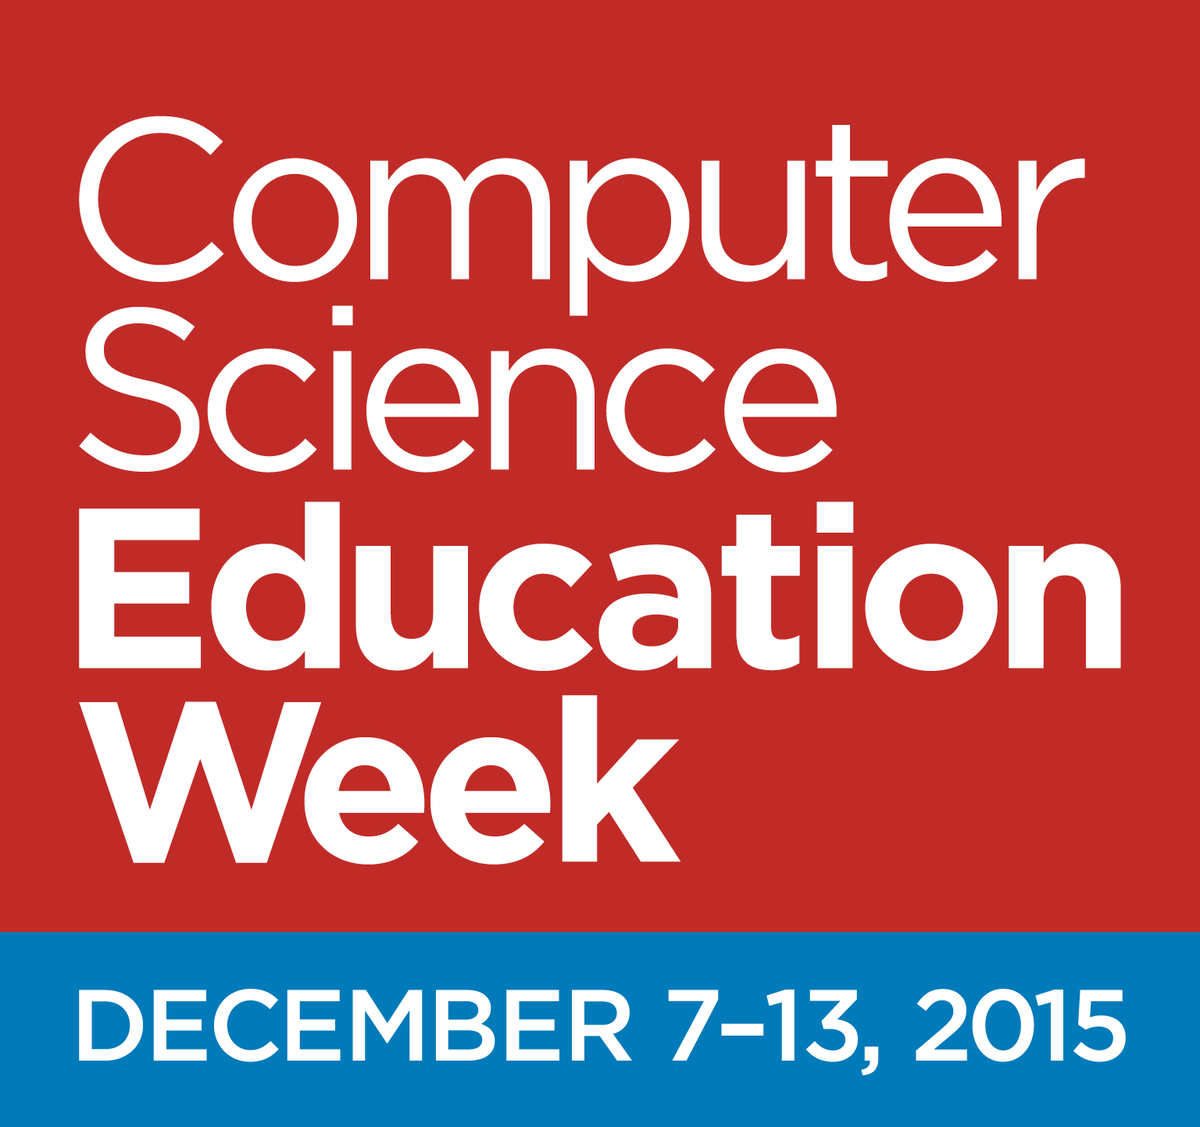 This year, #CSEdWeek soared to new heights in Massachusetts. Our #recap: https://t.co/V7J1EzH1oF #CSEdWeekMA https://t.co/Wx2rDNUTlB